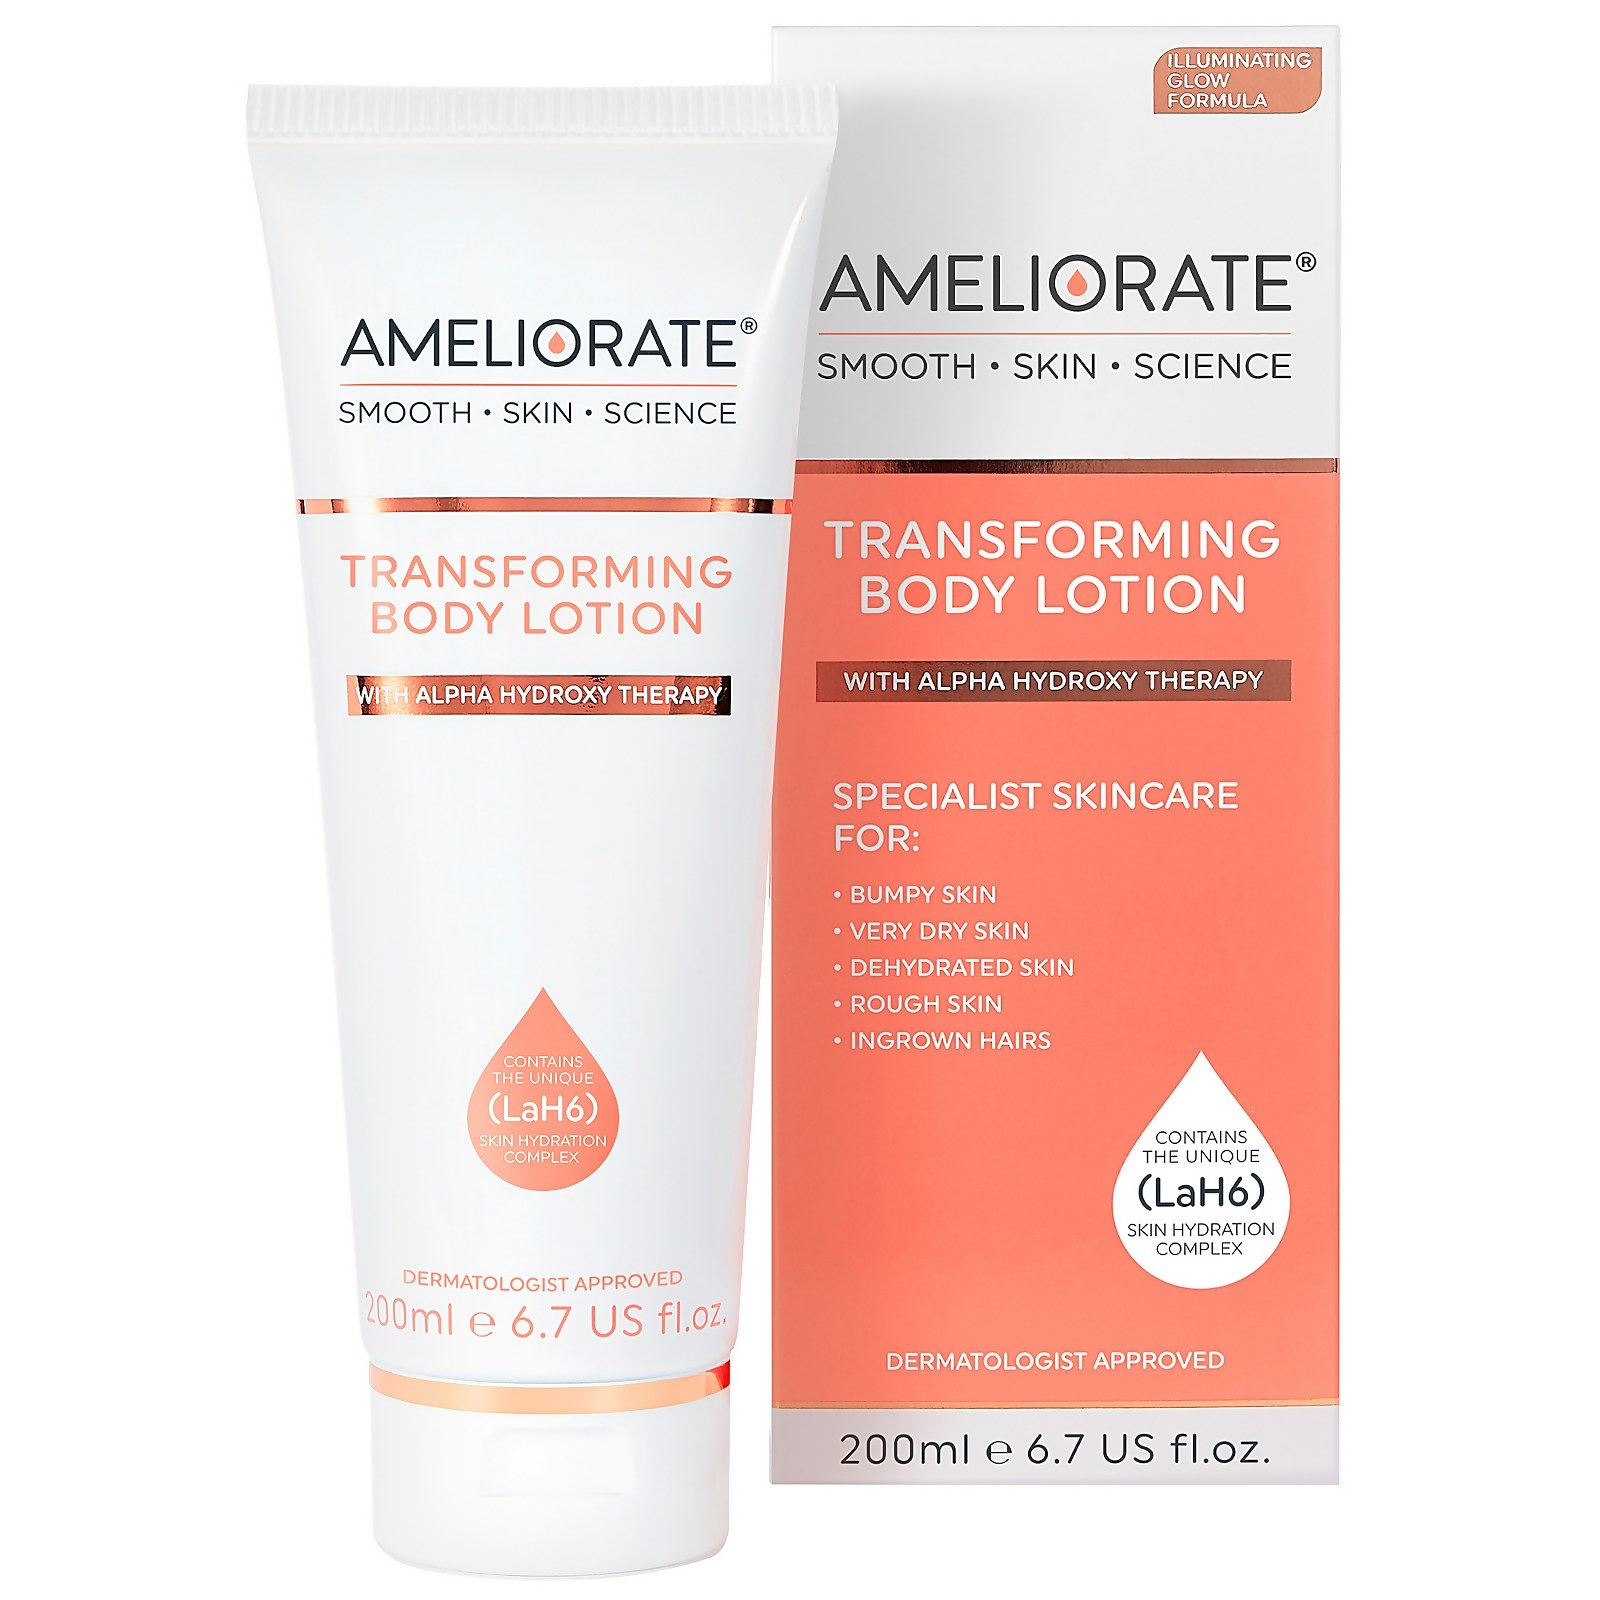 Ameliorate Transforming Body Lotion Illuminating Glow